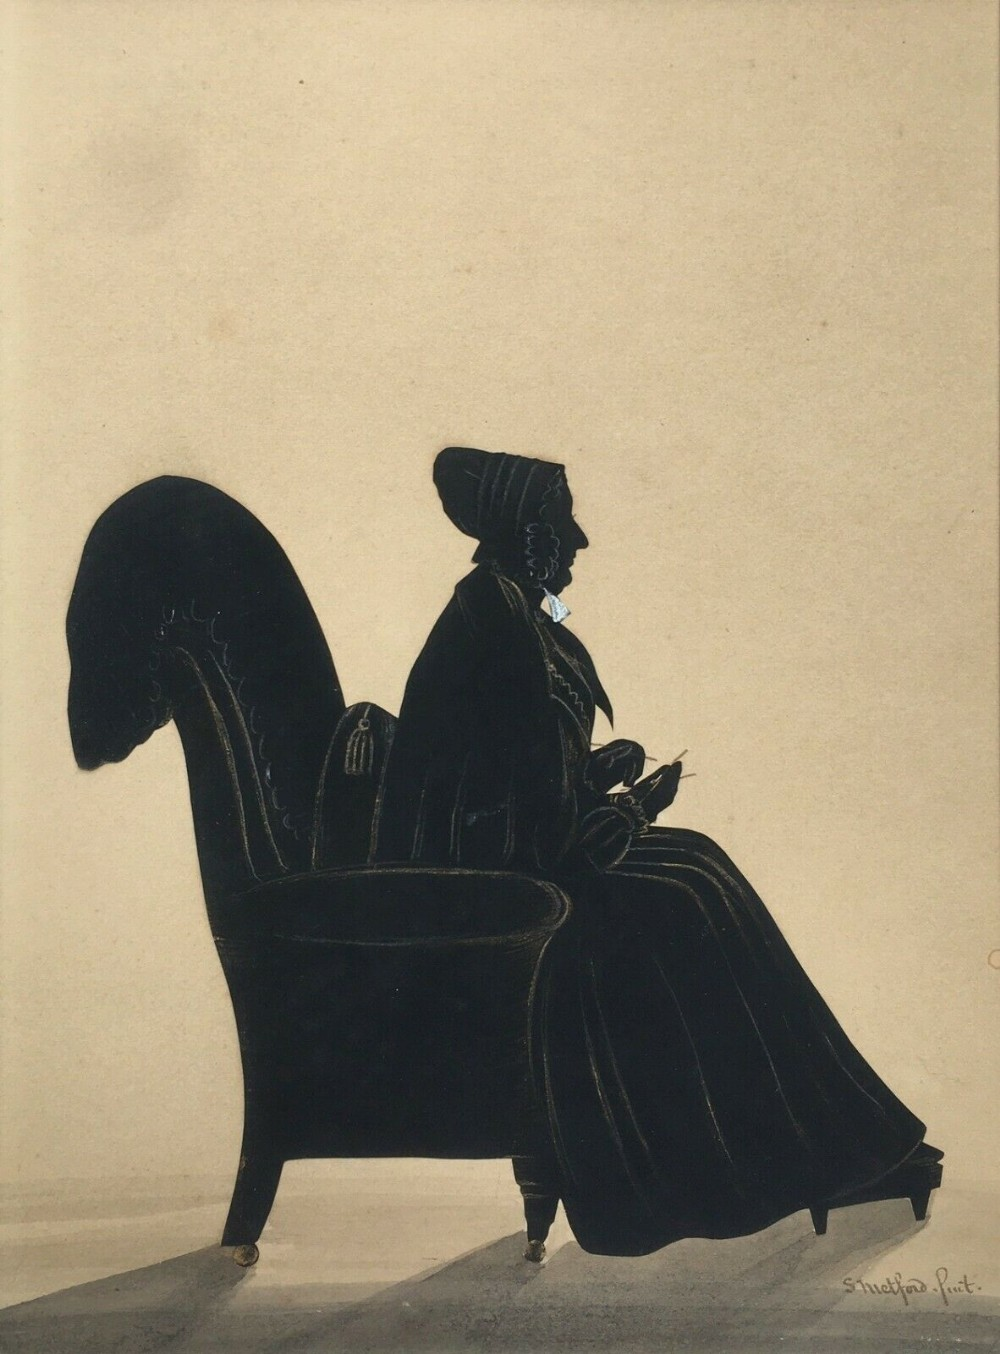 samuel metford of somerset signed original 19th century antique watercolour cut silhouette of a seated lady